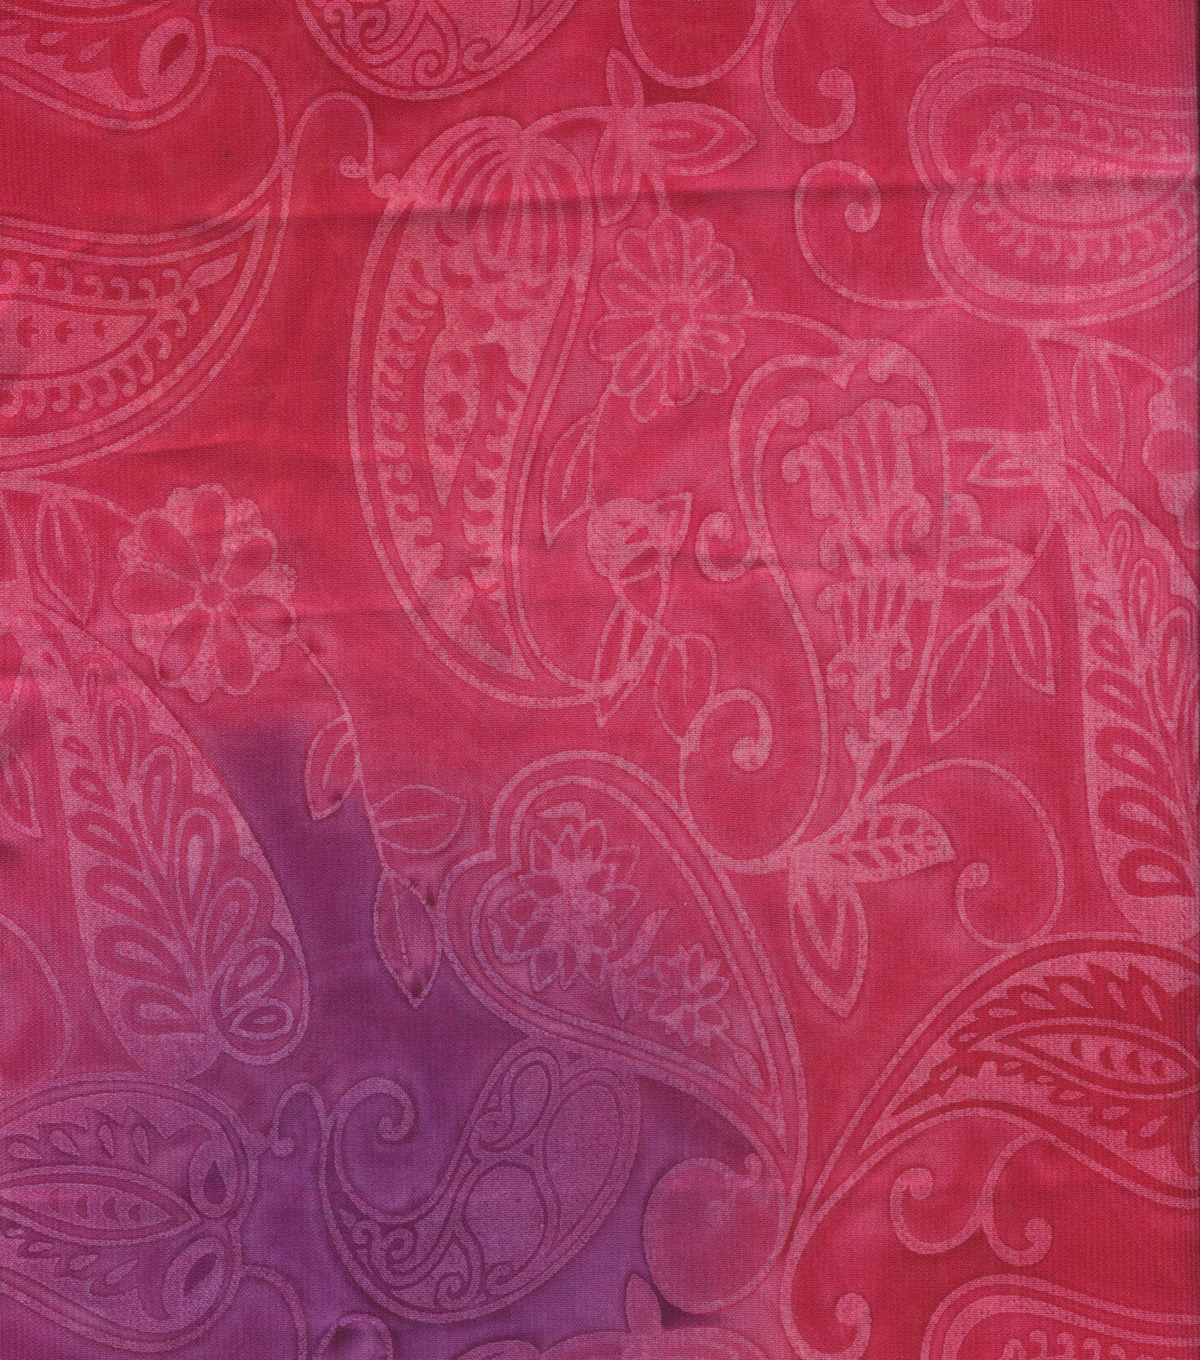 Sari Fabric-Floral Paisley Pink Orange